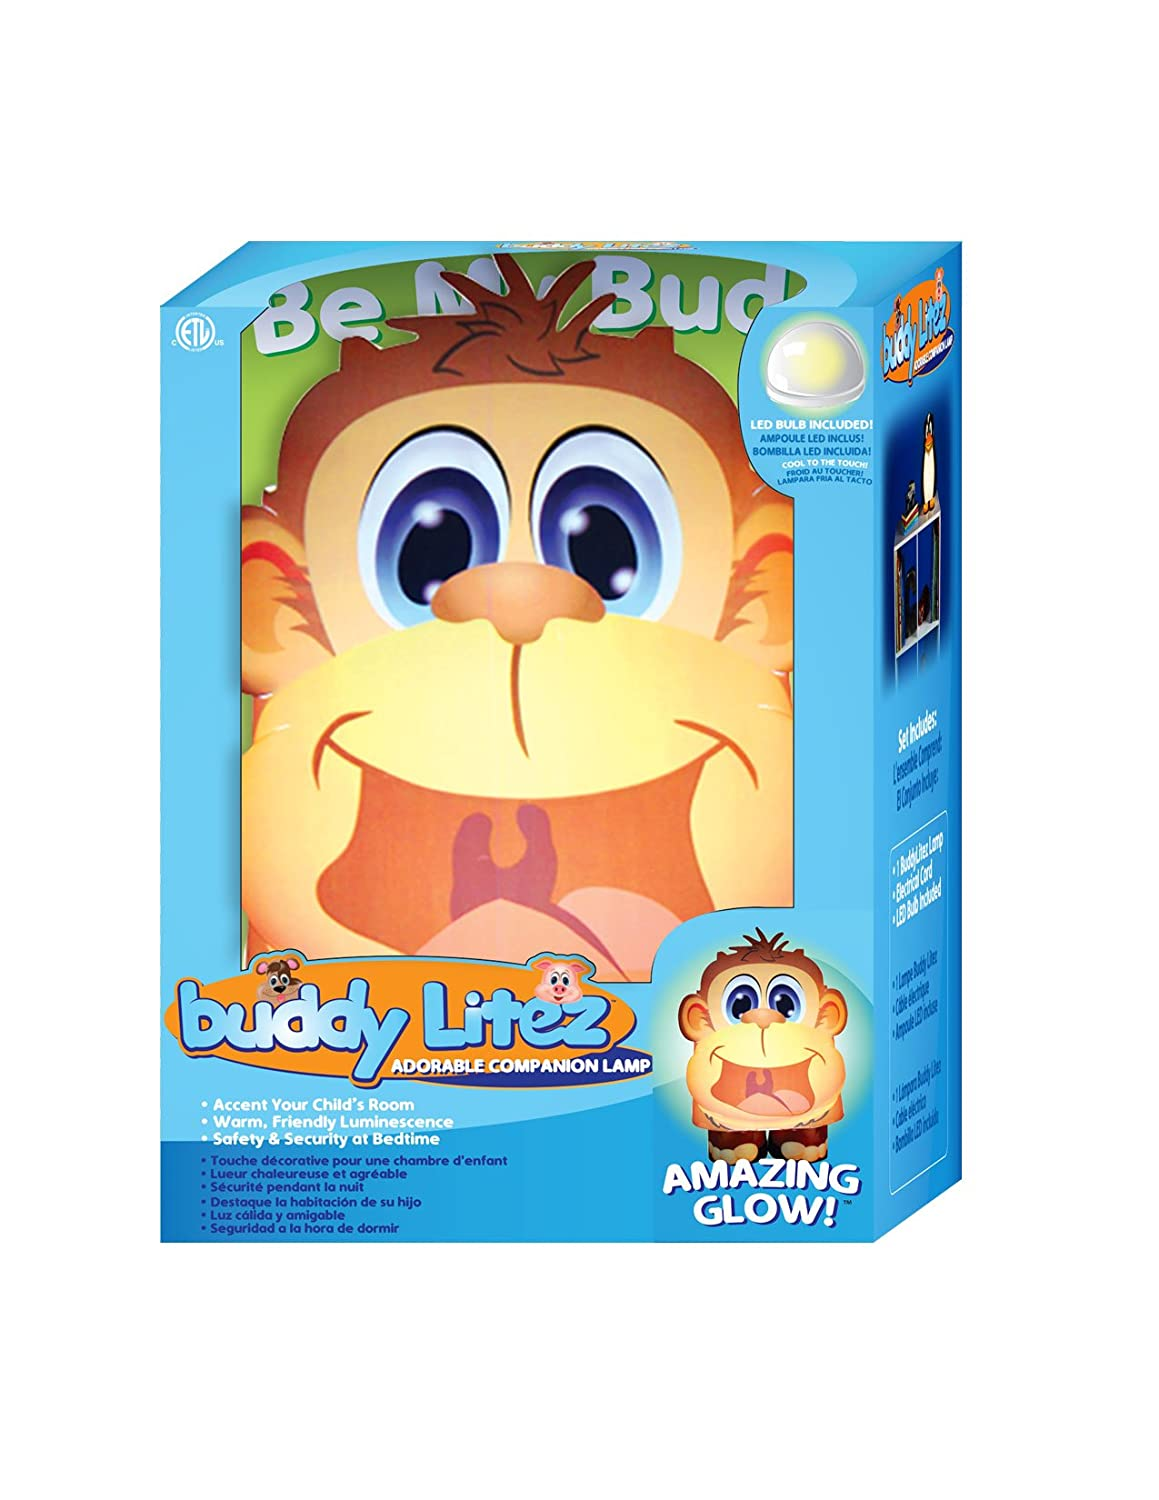 Amazon.com: BuddyLitez Childrens MONKEY LED Nightlight Lamp for Kids Bedroom Nightstand, Reading, Gift and Toy: Home & Kitchen